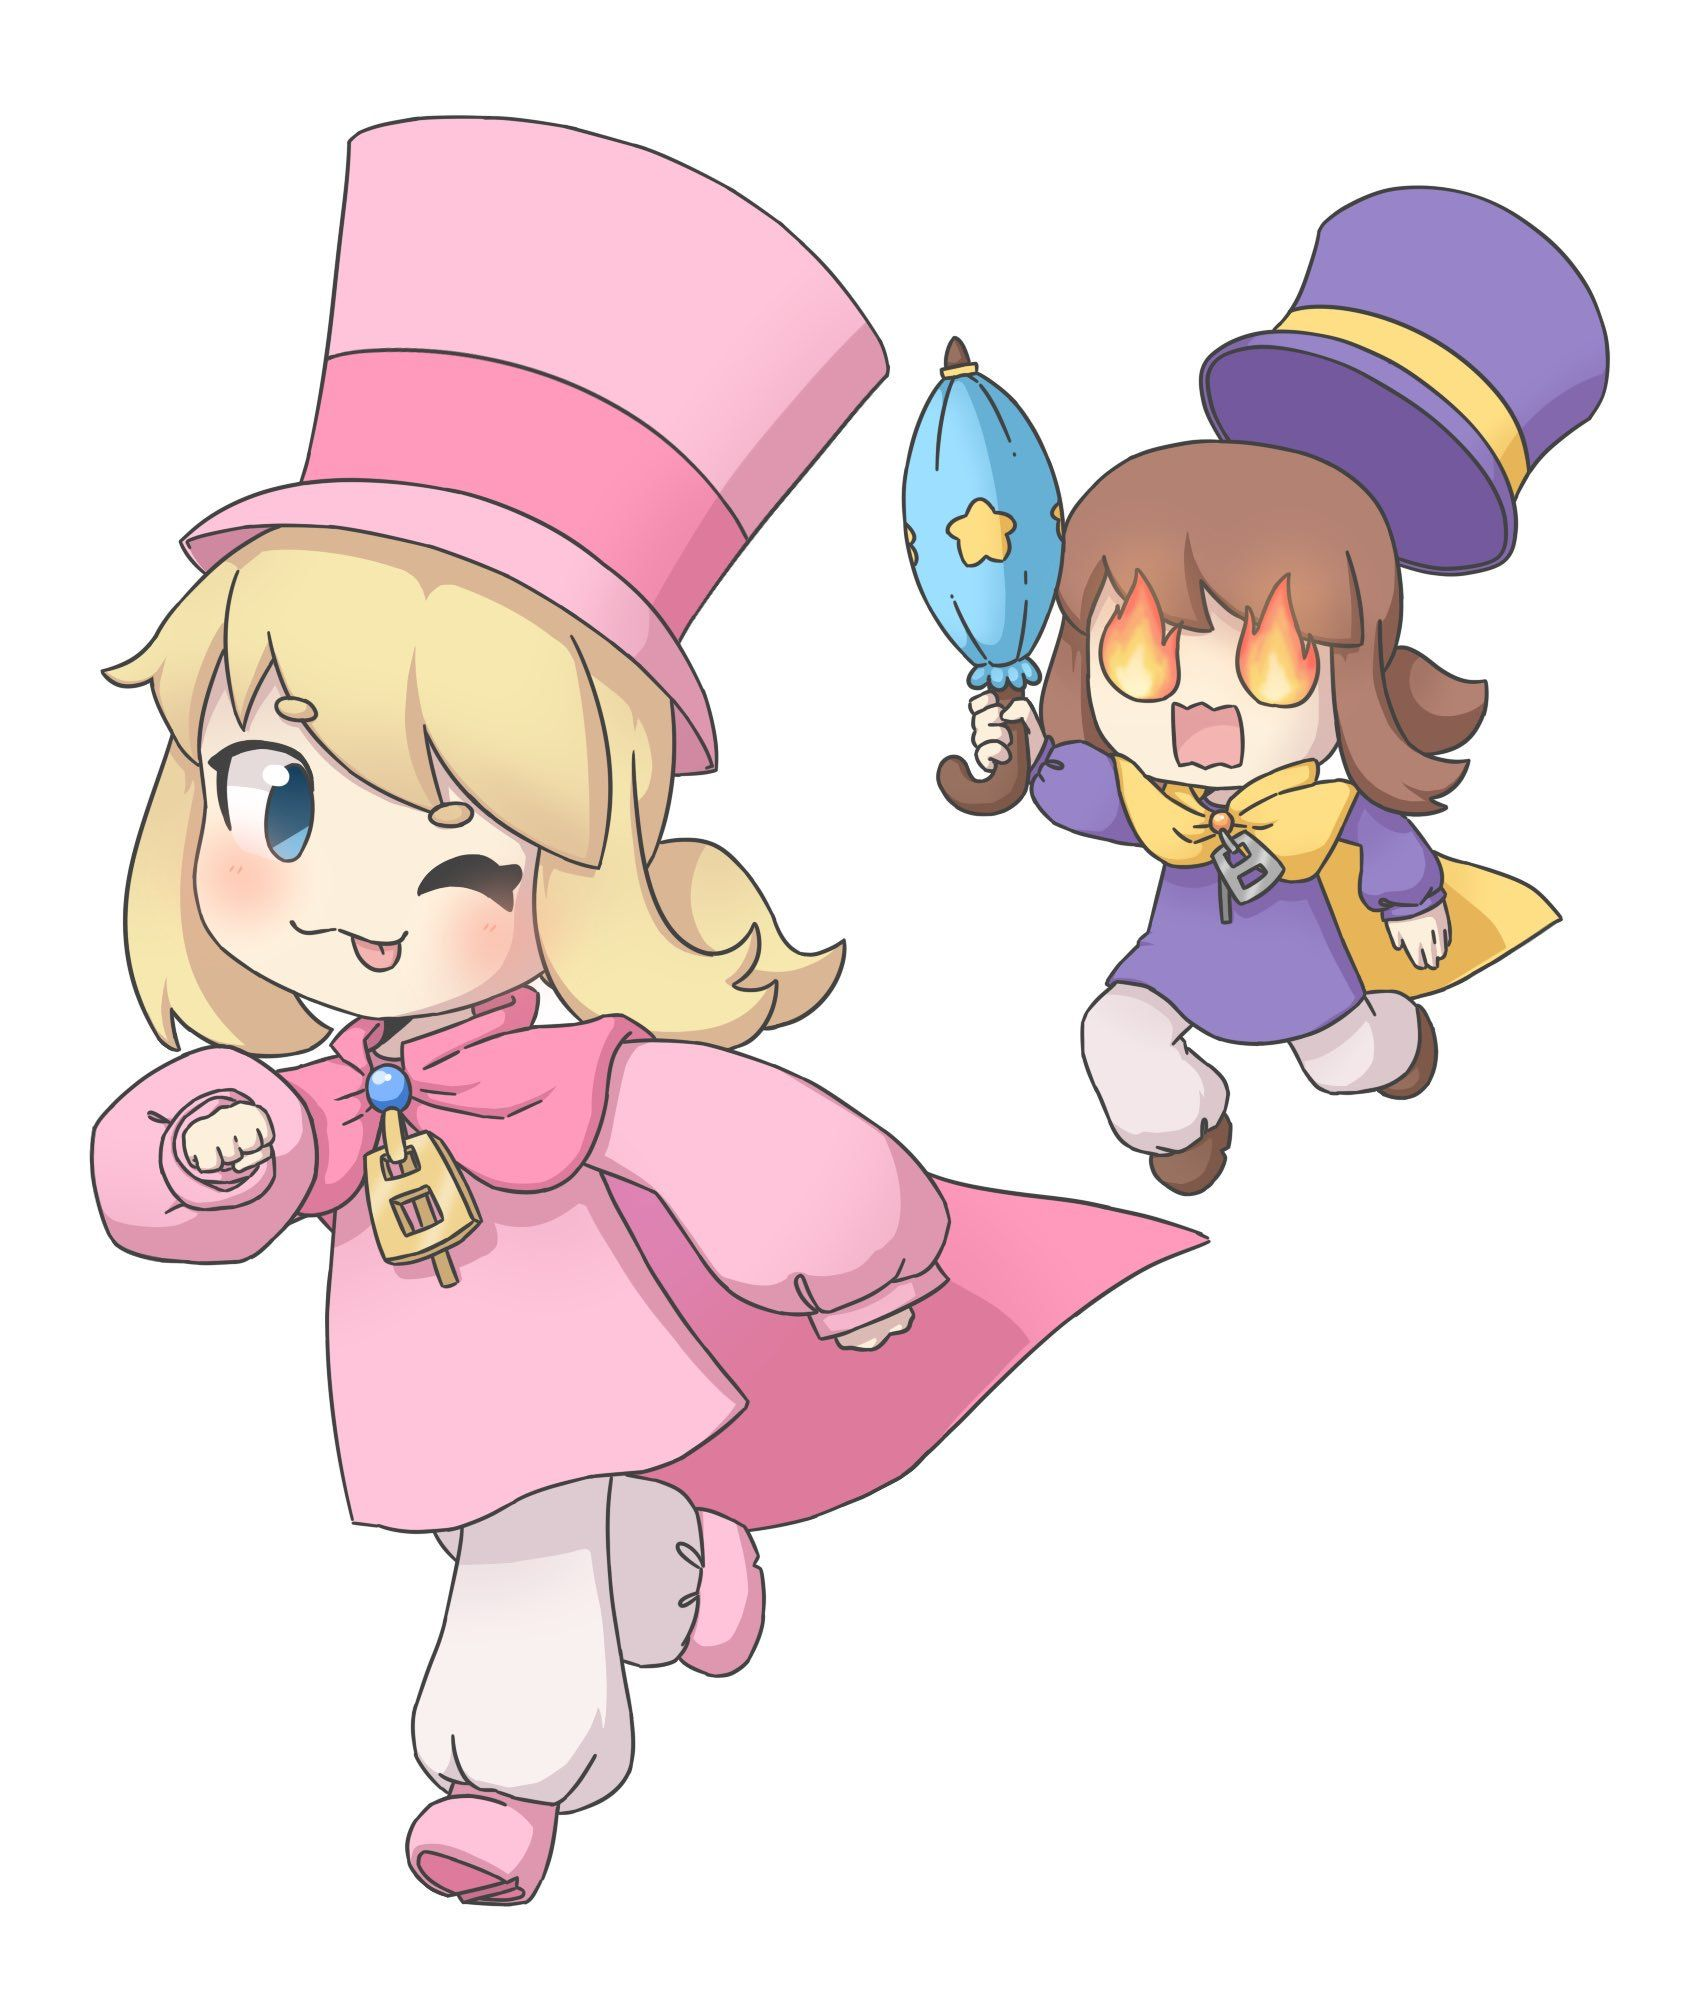 A Hat In Time Nyakuza Metro Out Now Hatintime Twitter A Hat In Time Hat In Time Hat In Time Art